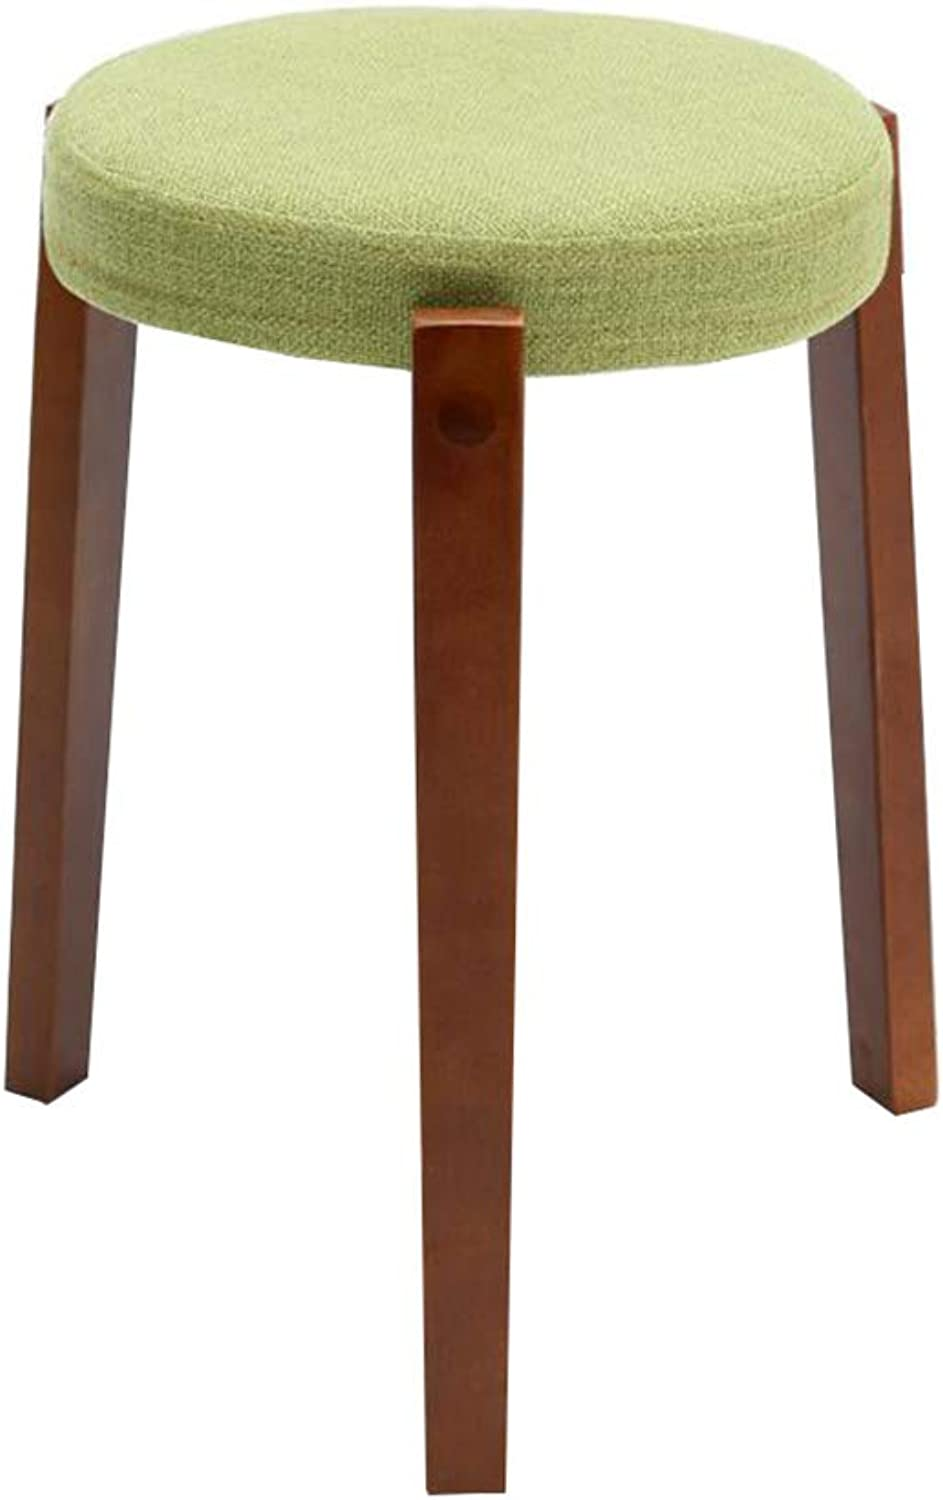 Dall Round Stool Solid Wood Living Room Small Chair Home Fabric Dining Table Bench (color   T5)